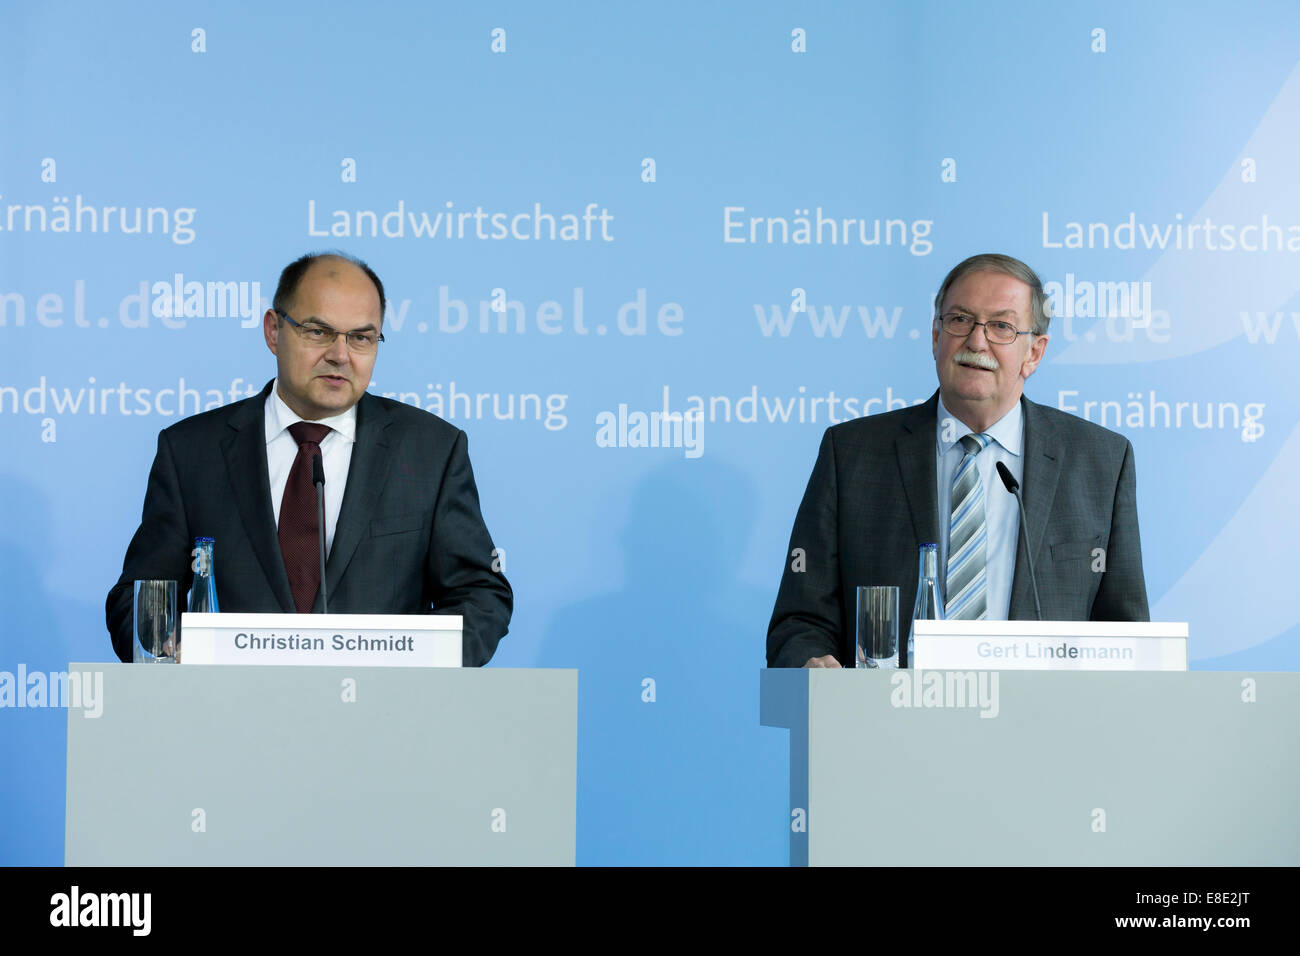 Berlin, Germany. 6th October, 2014. Under the management of former Minister of Agriculture Gert Lindemann from Lower - Stock Image